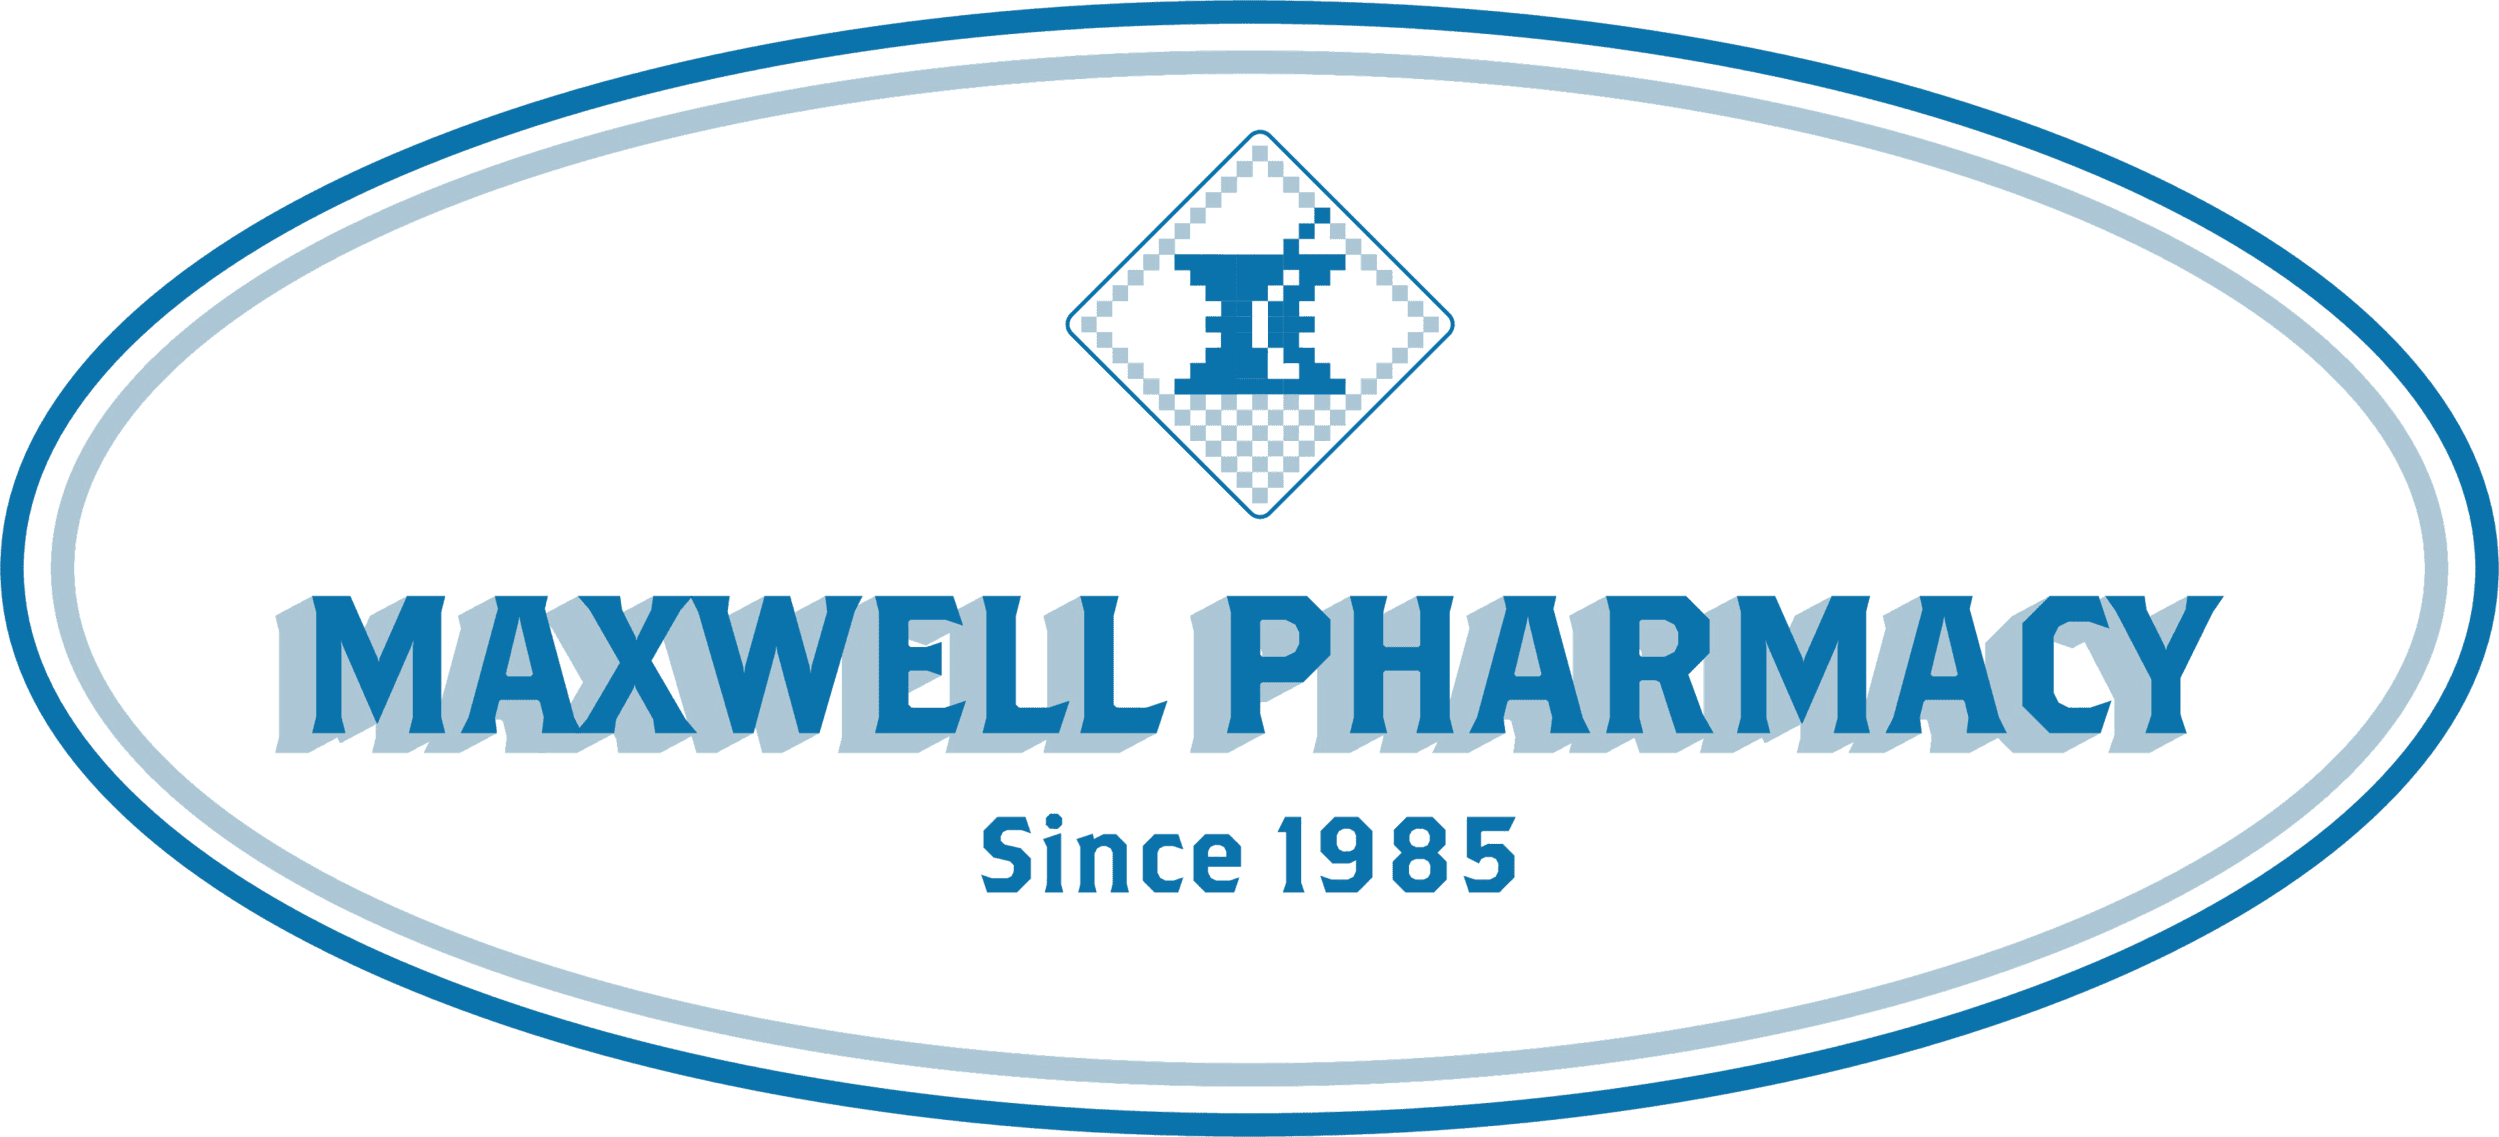 Maxwell Pharmacy, Inc.